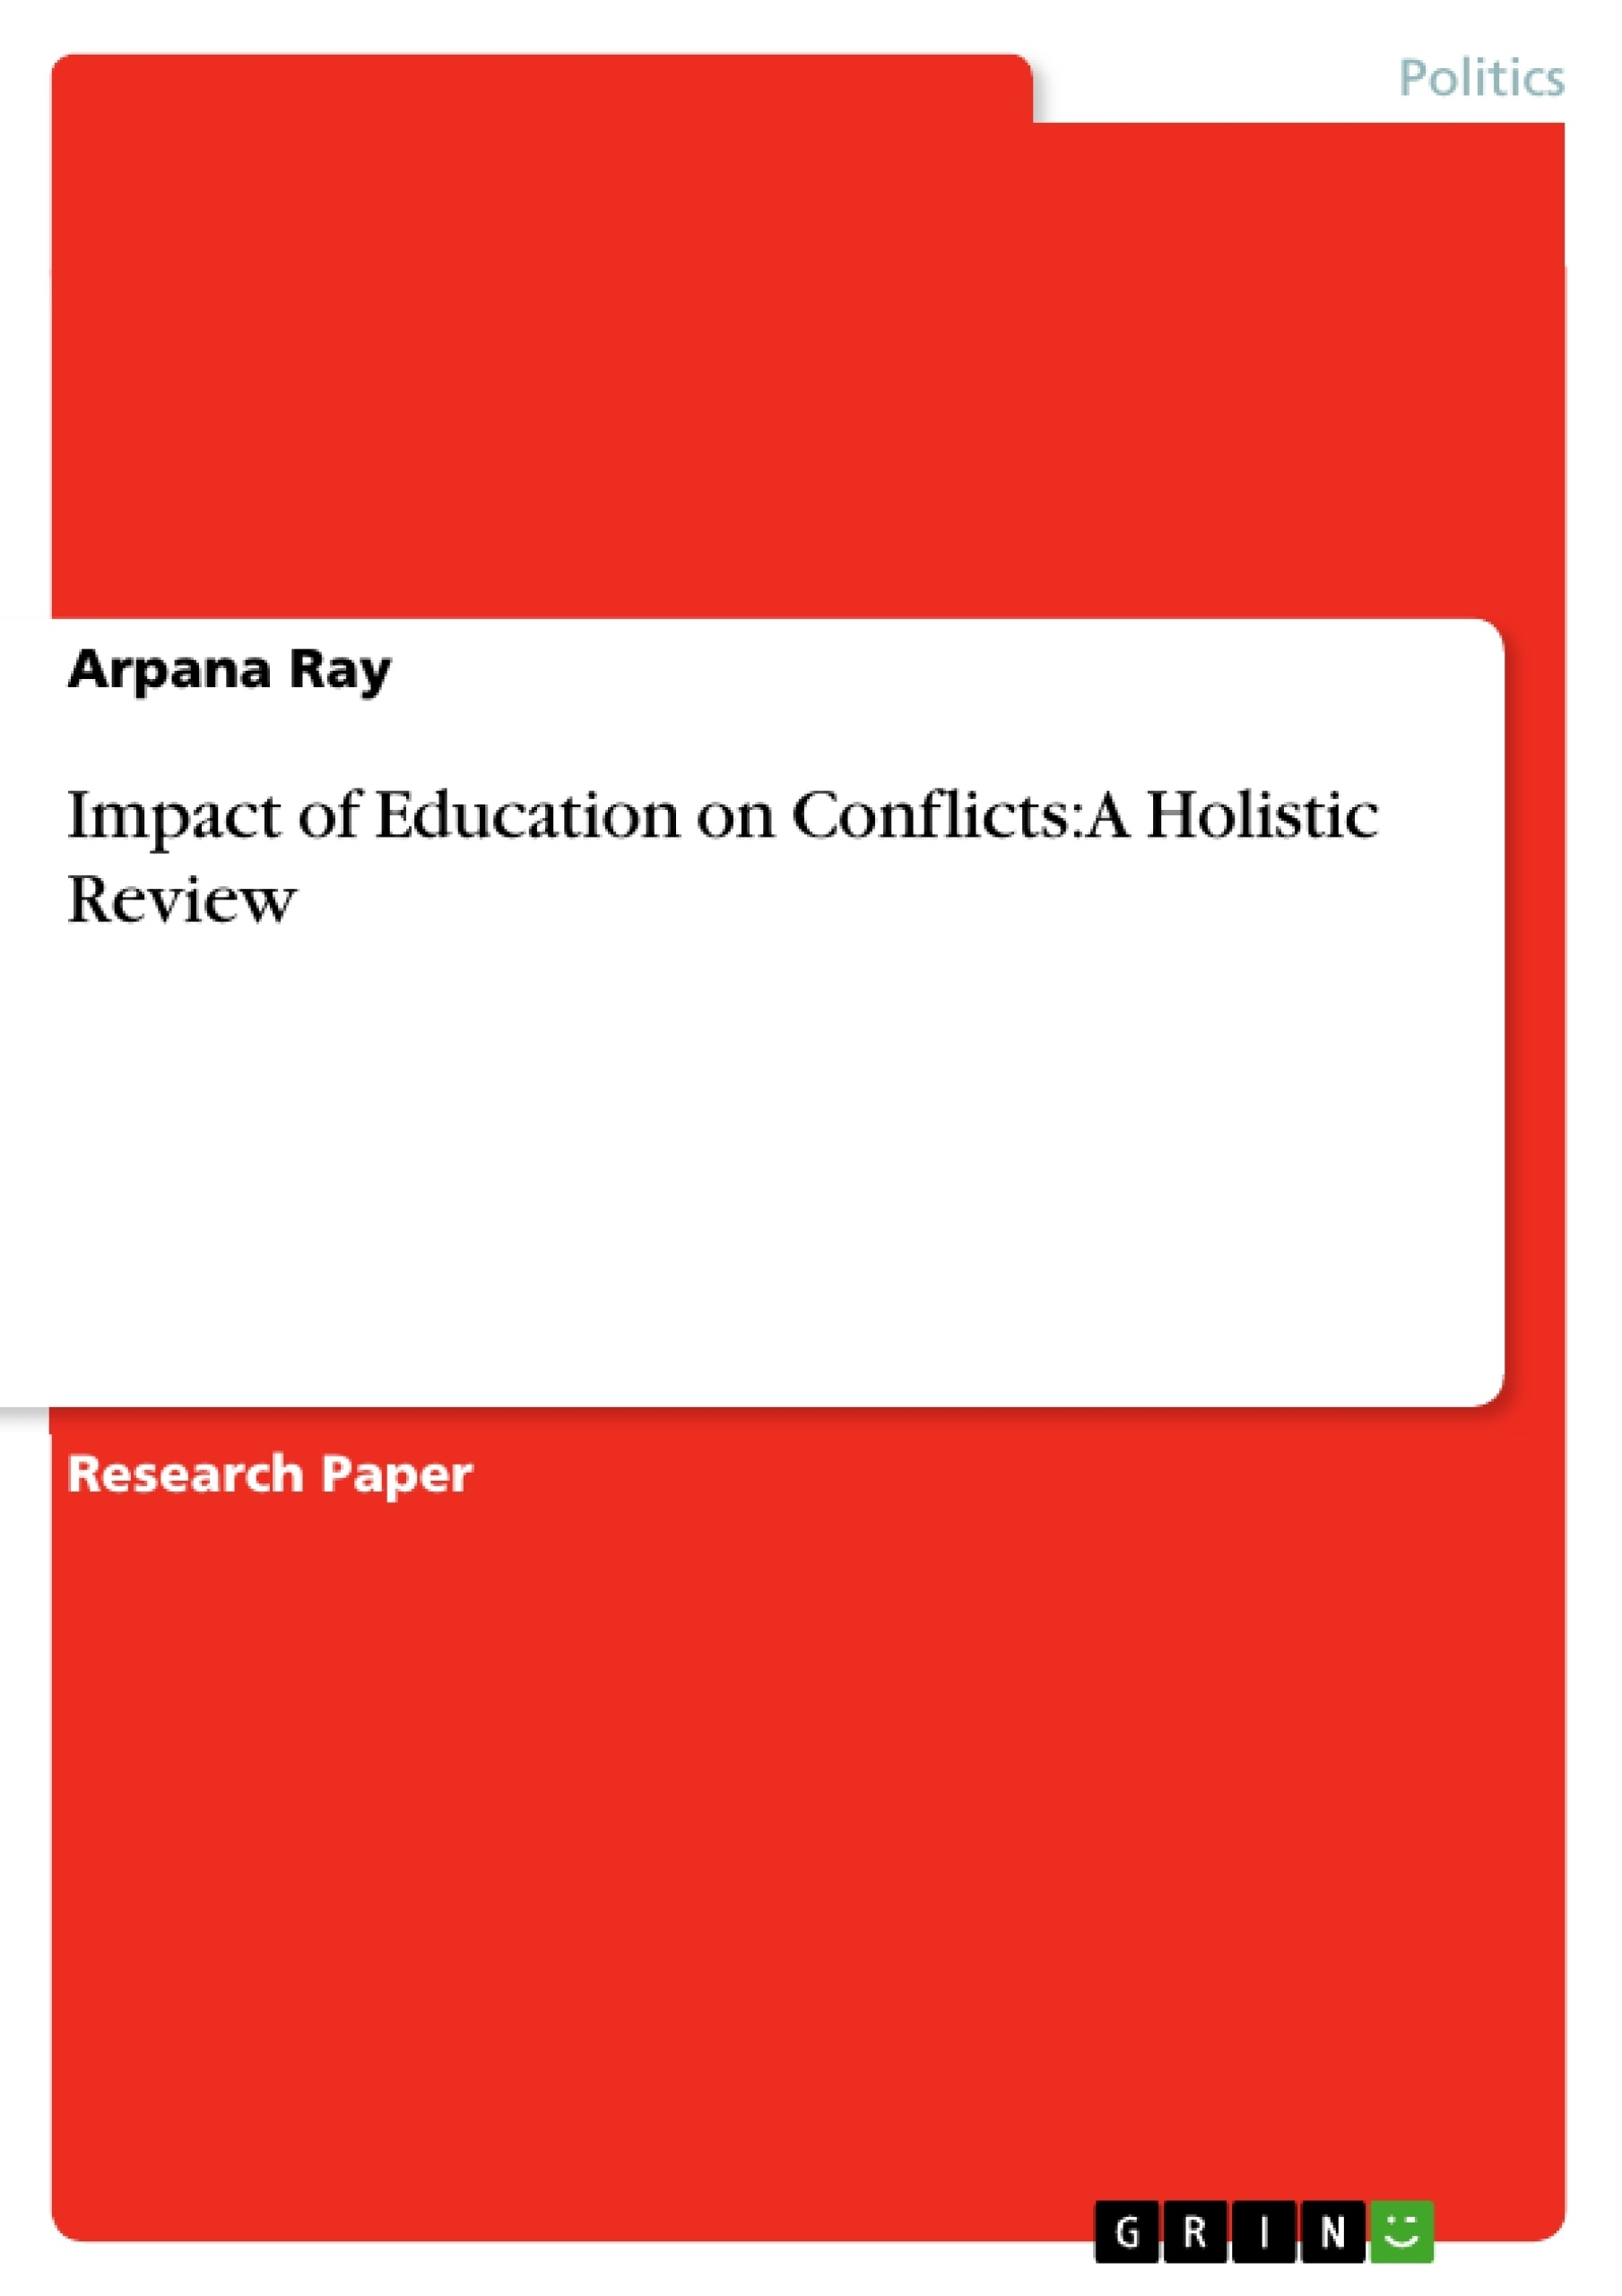 Title: Impact of Education on Conflicts: A Holistic Review